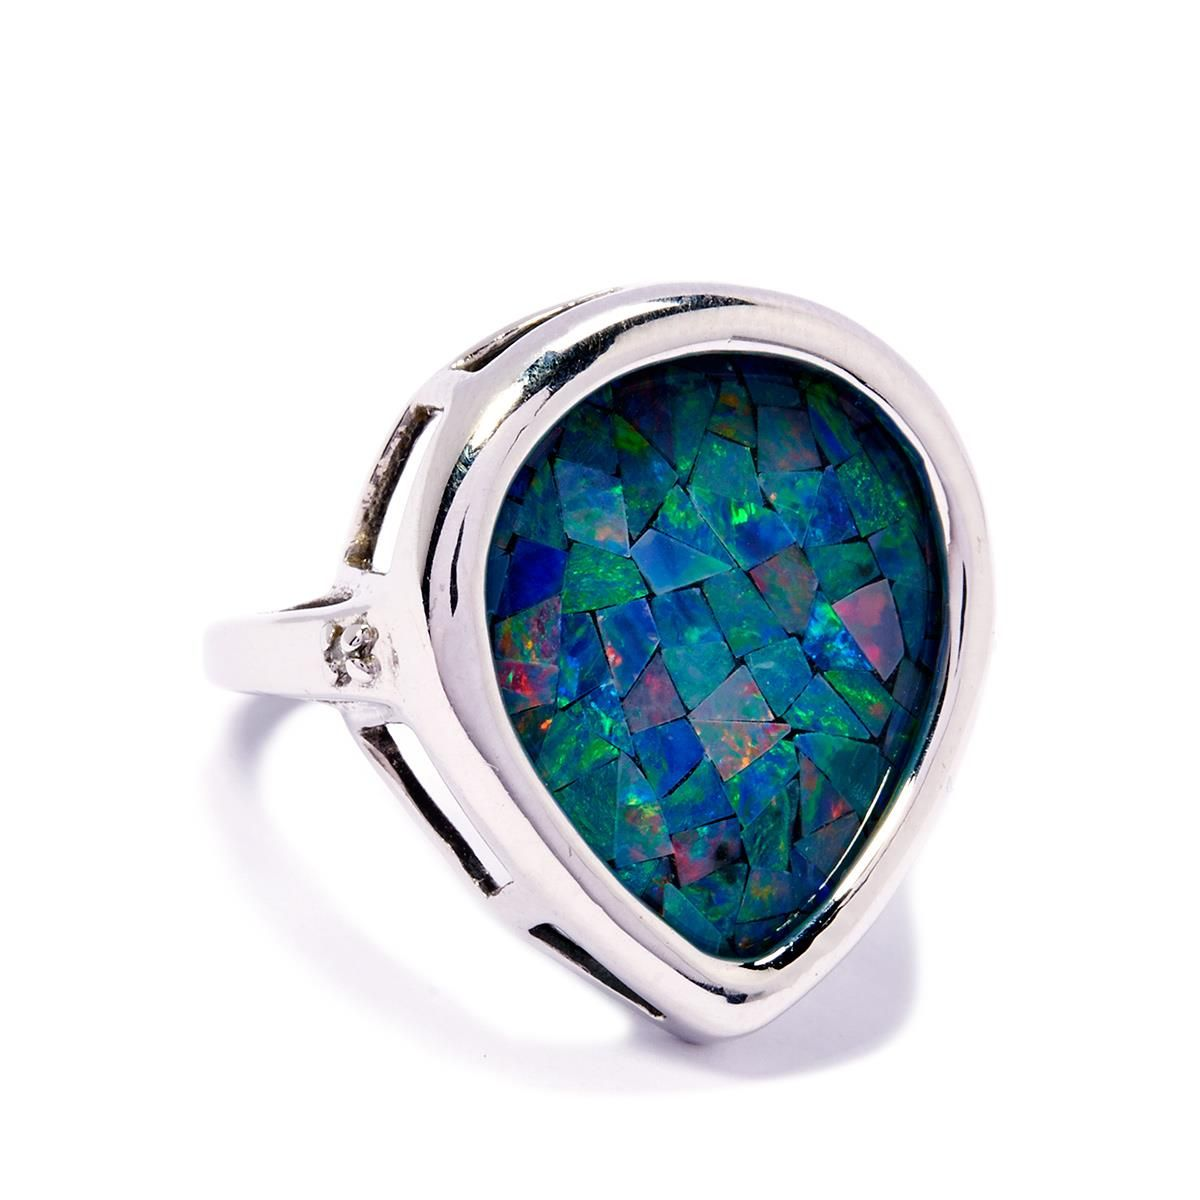 A classically designed Ring from the Jacque Christie collection set into 9k White Gold featuring Mosaic Opal with dazzling Diamonds.